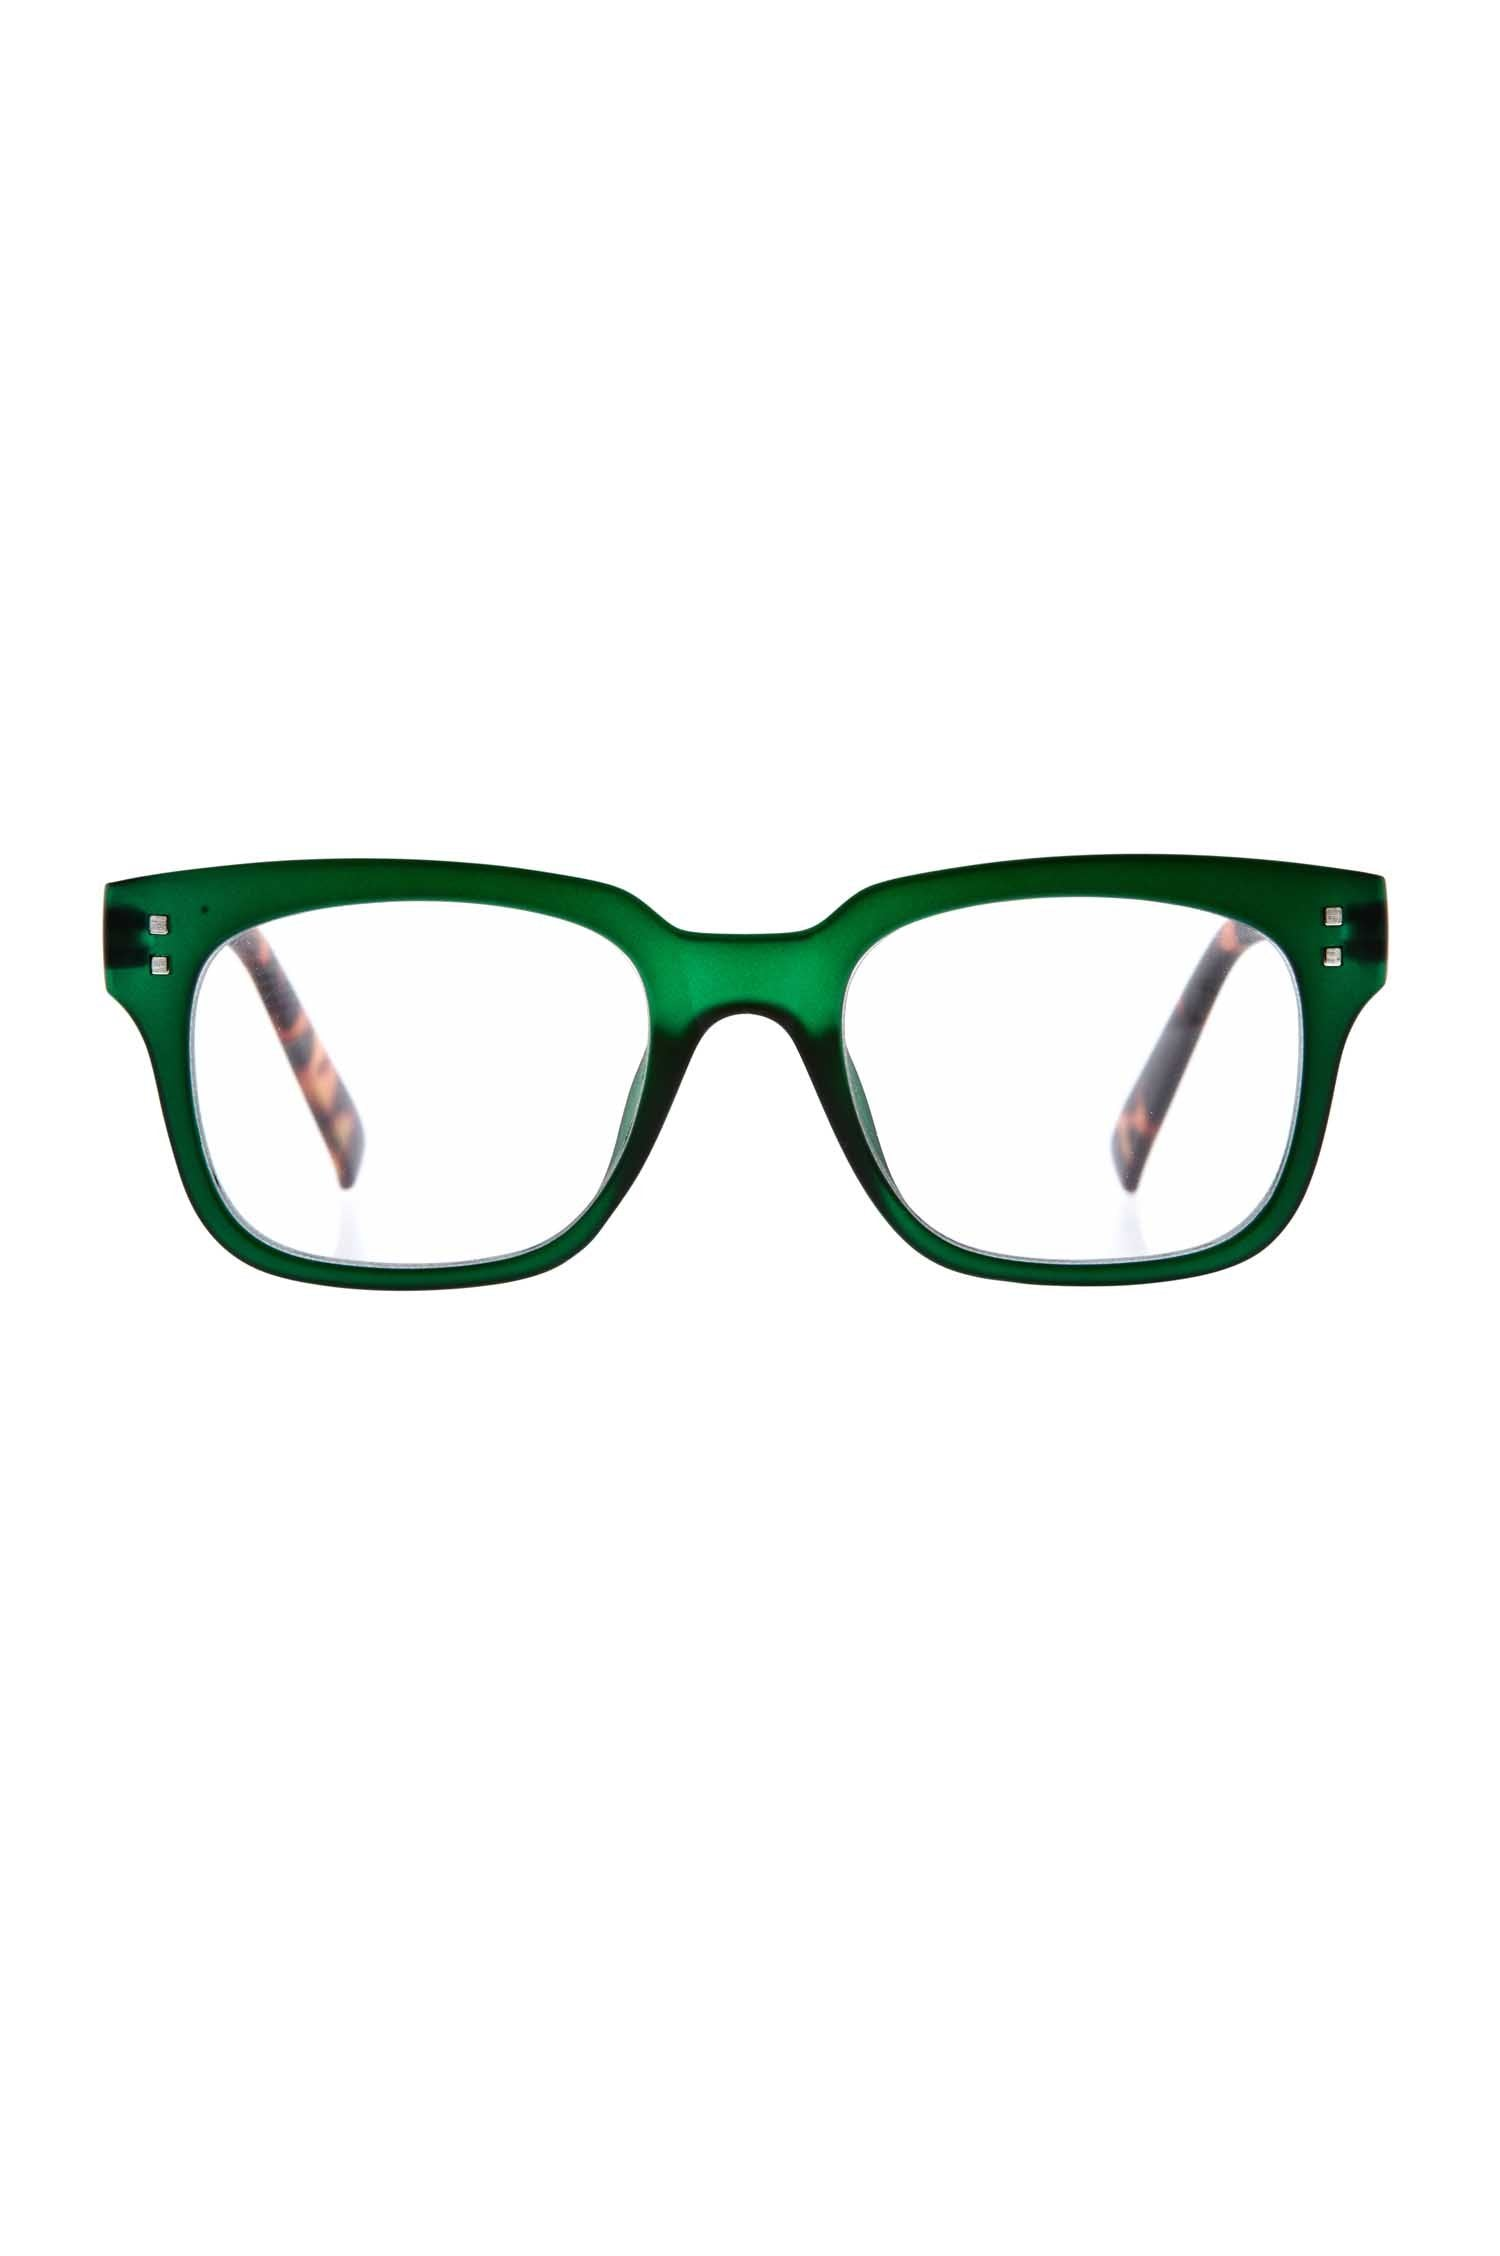 6am Green Reading Glasses